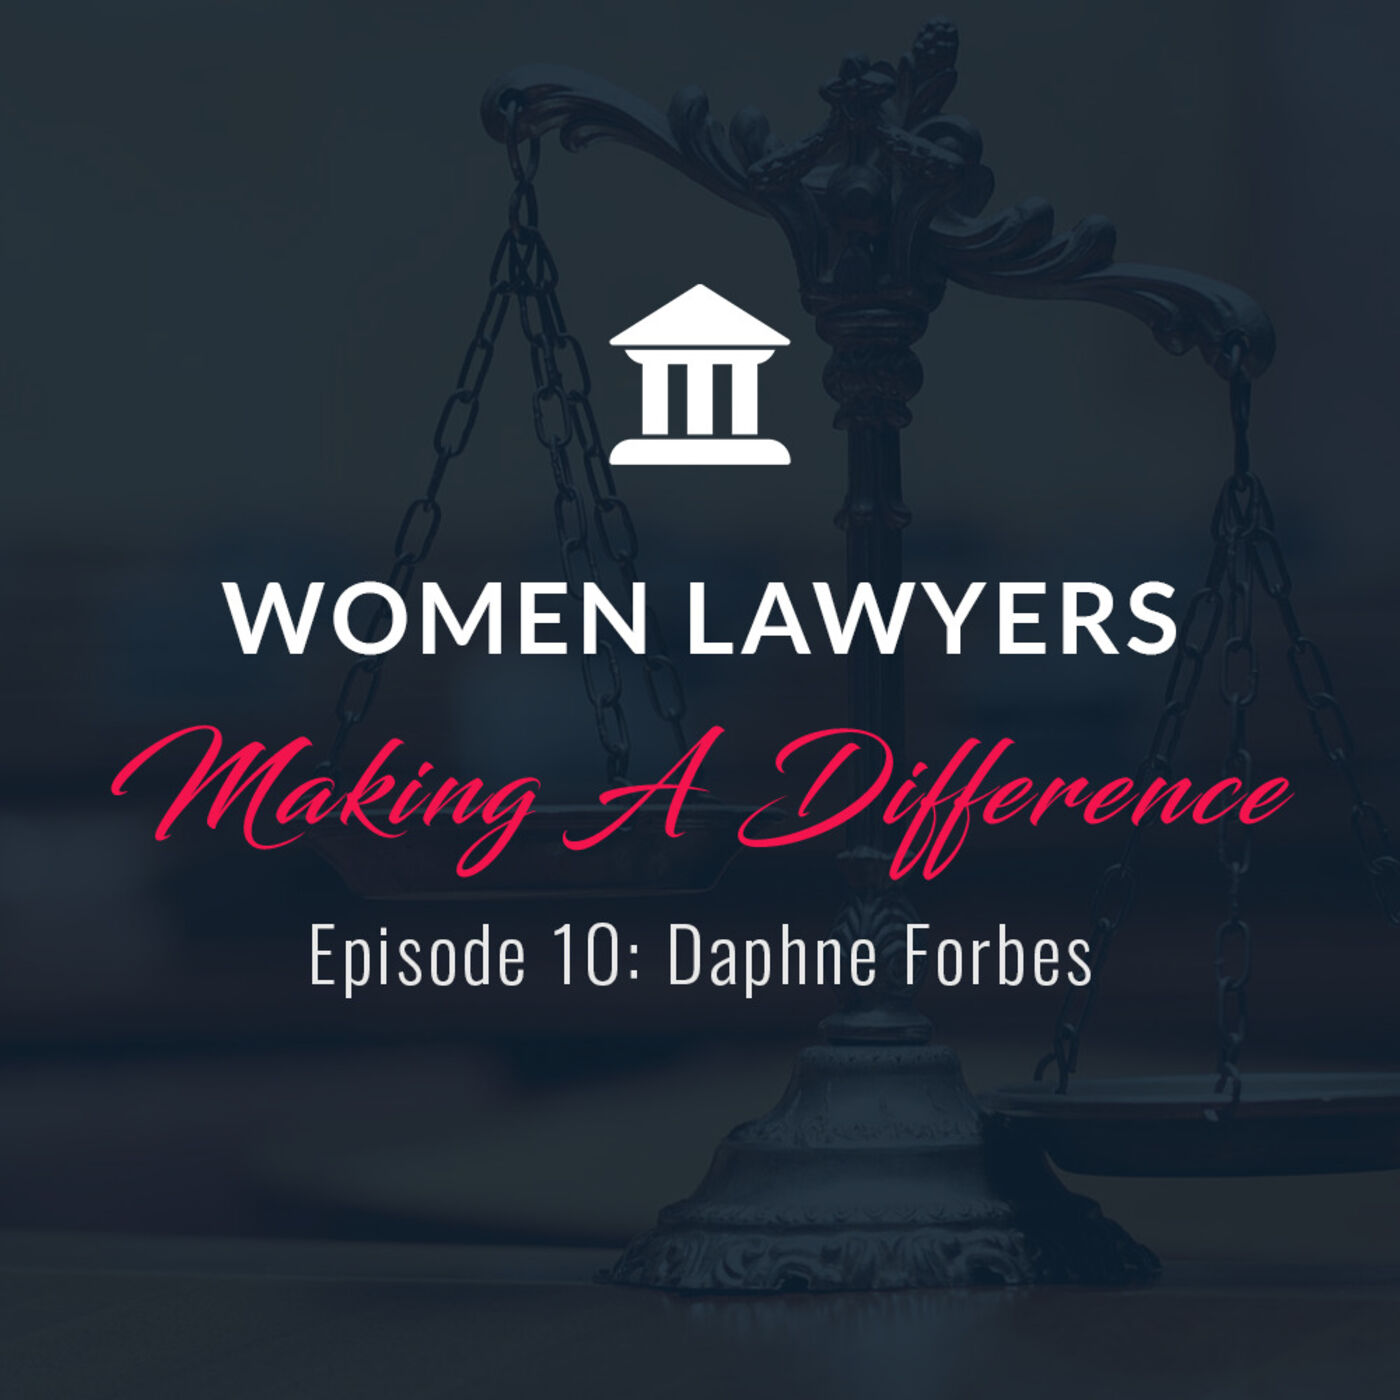 Women Lawyers Making A Difference: Interview with Daphne Forbes